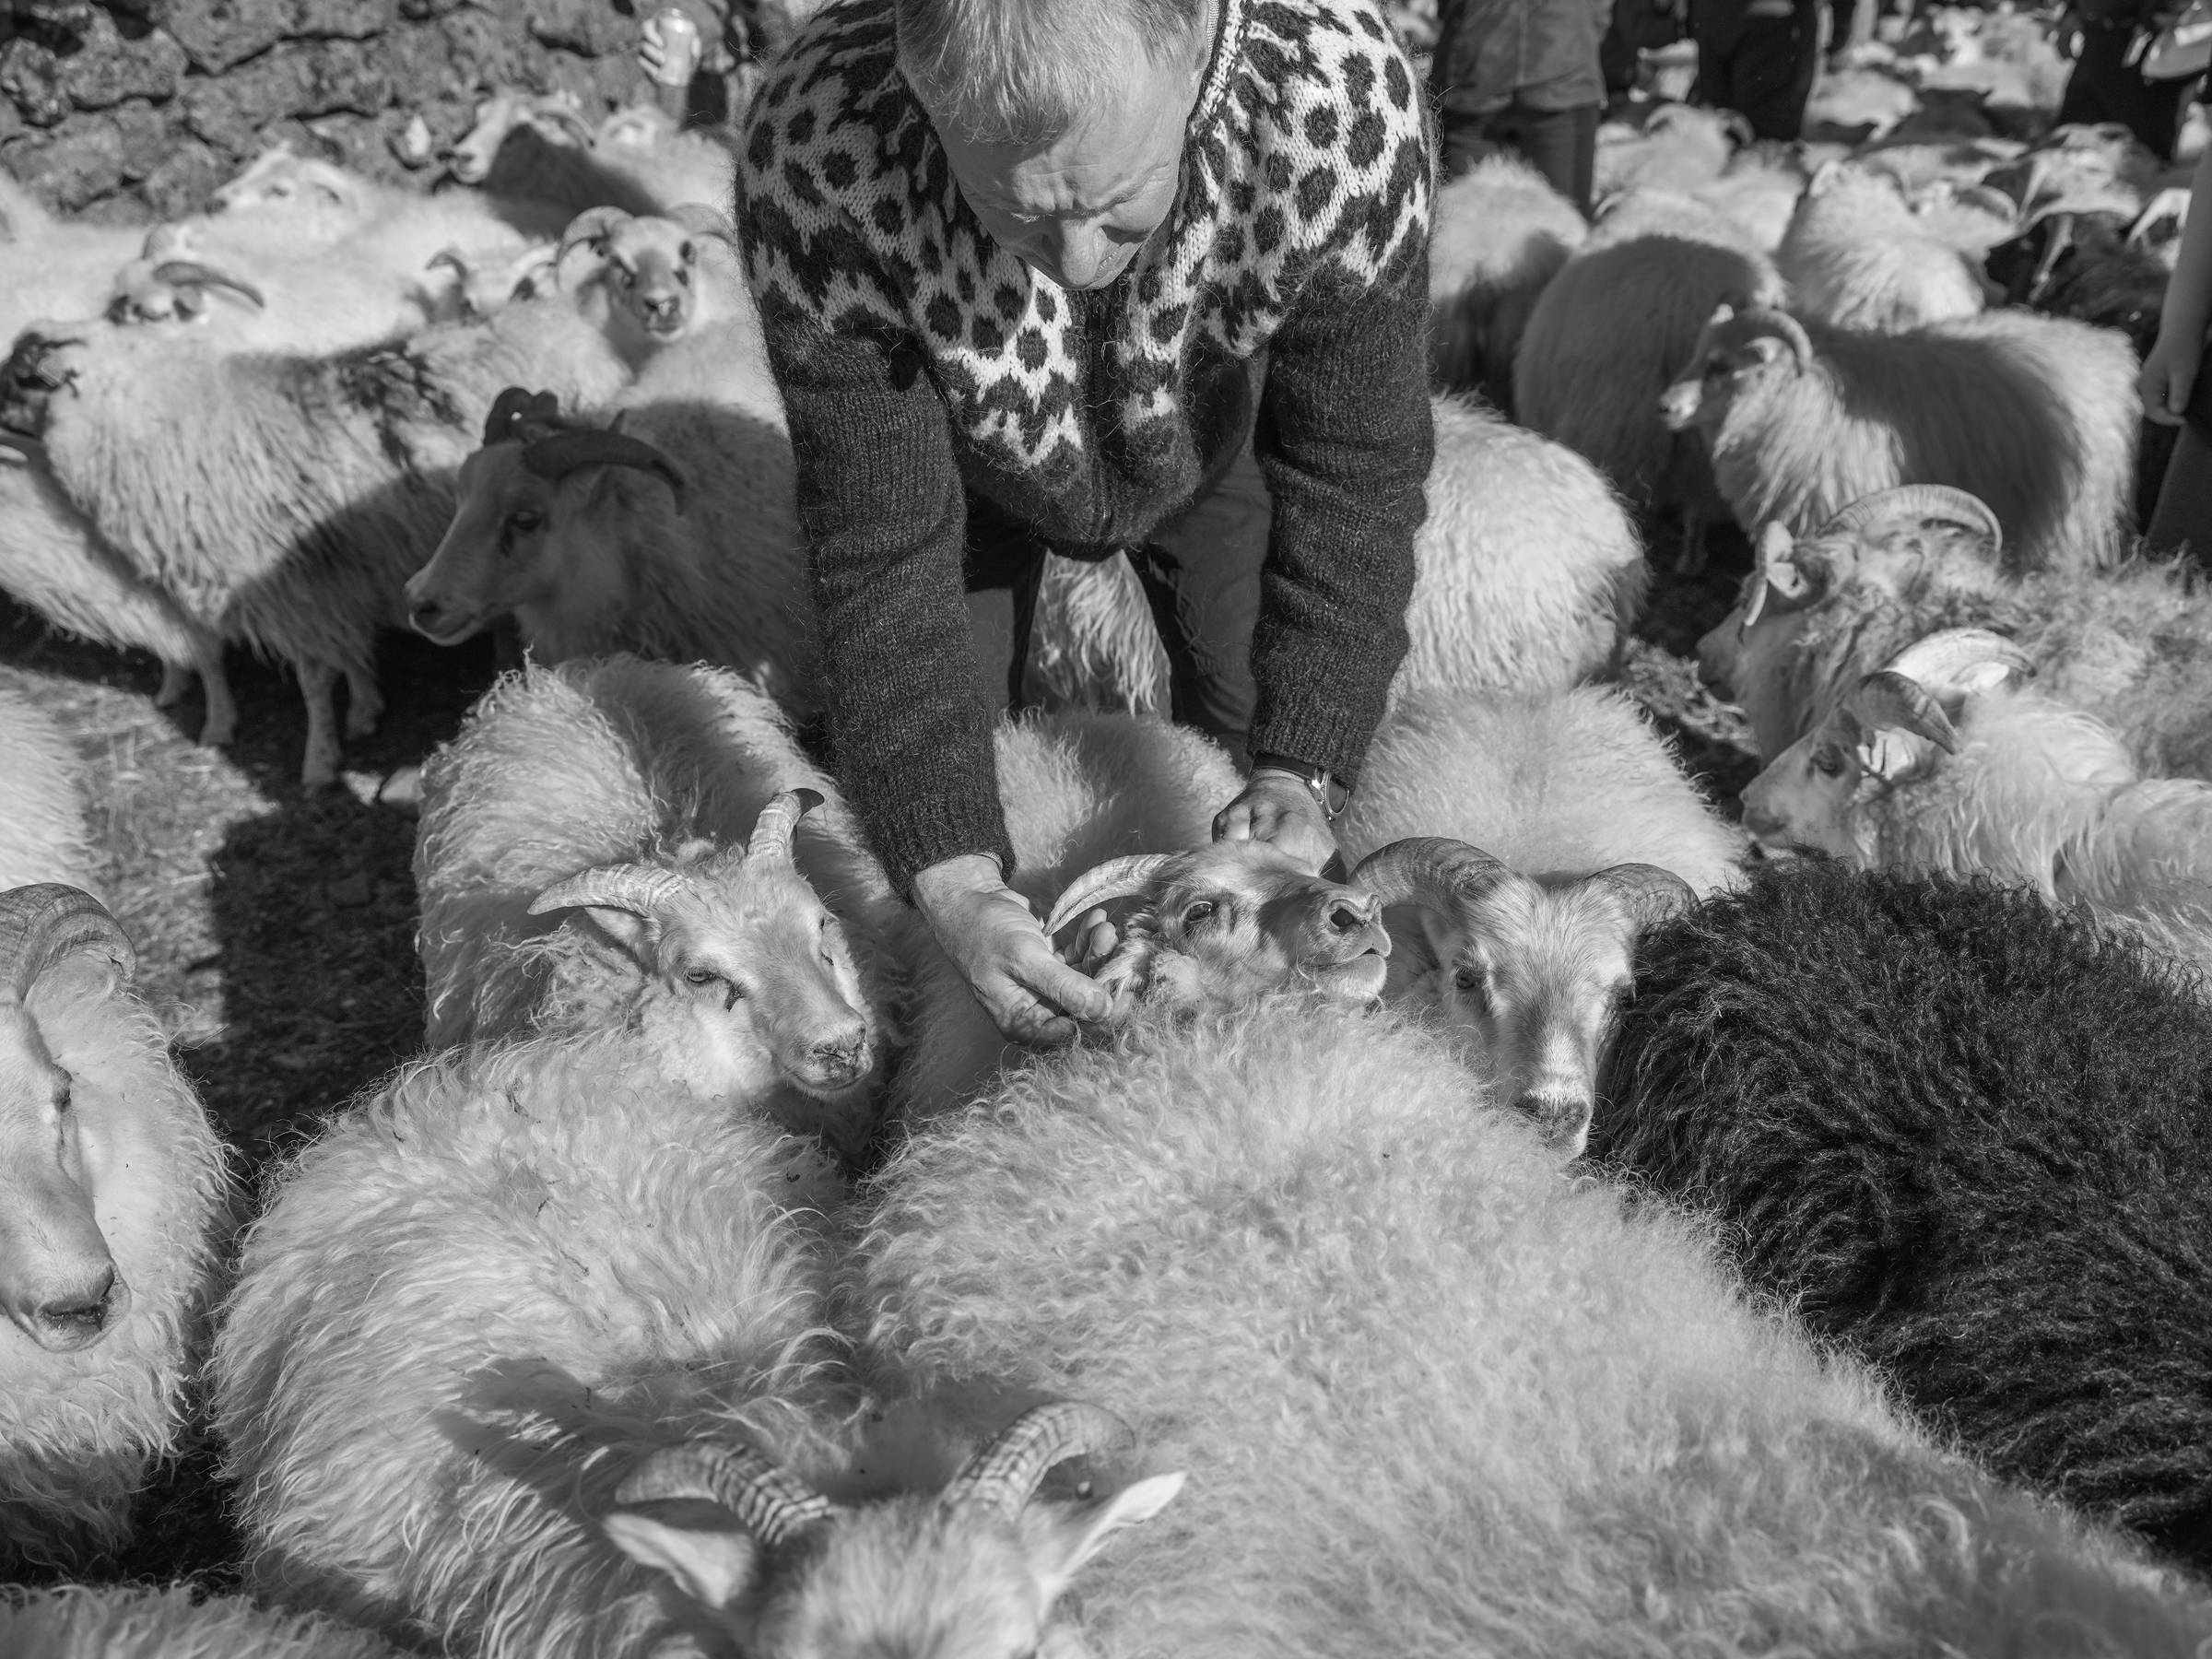 One of the farmers checks an ear tag, and ear marks during the sort.